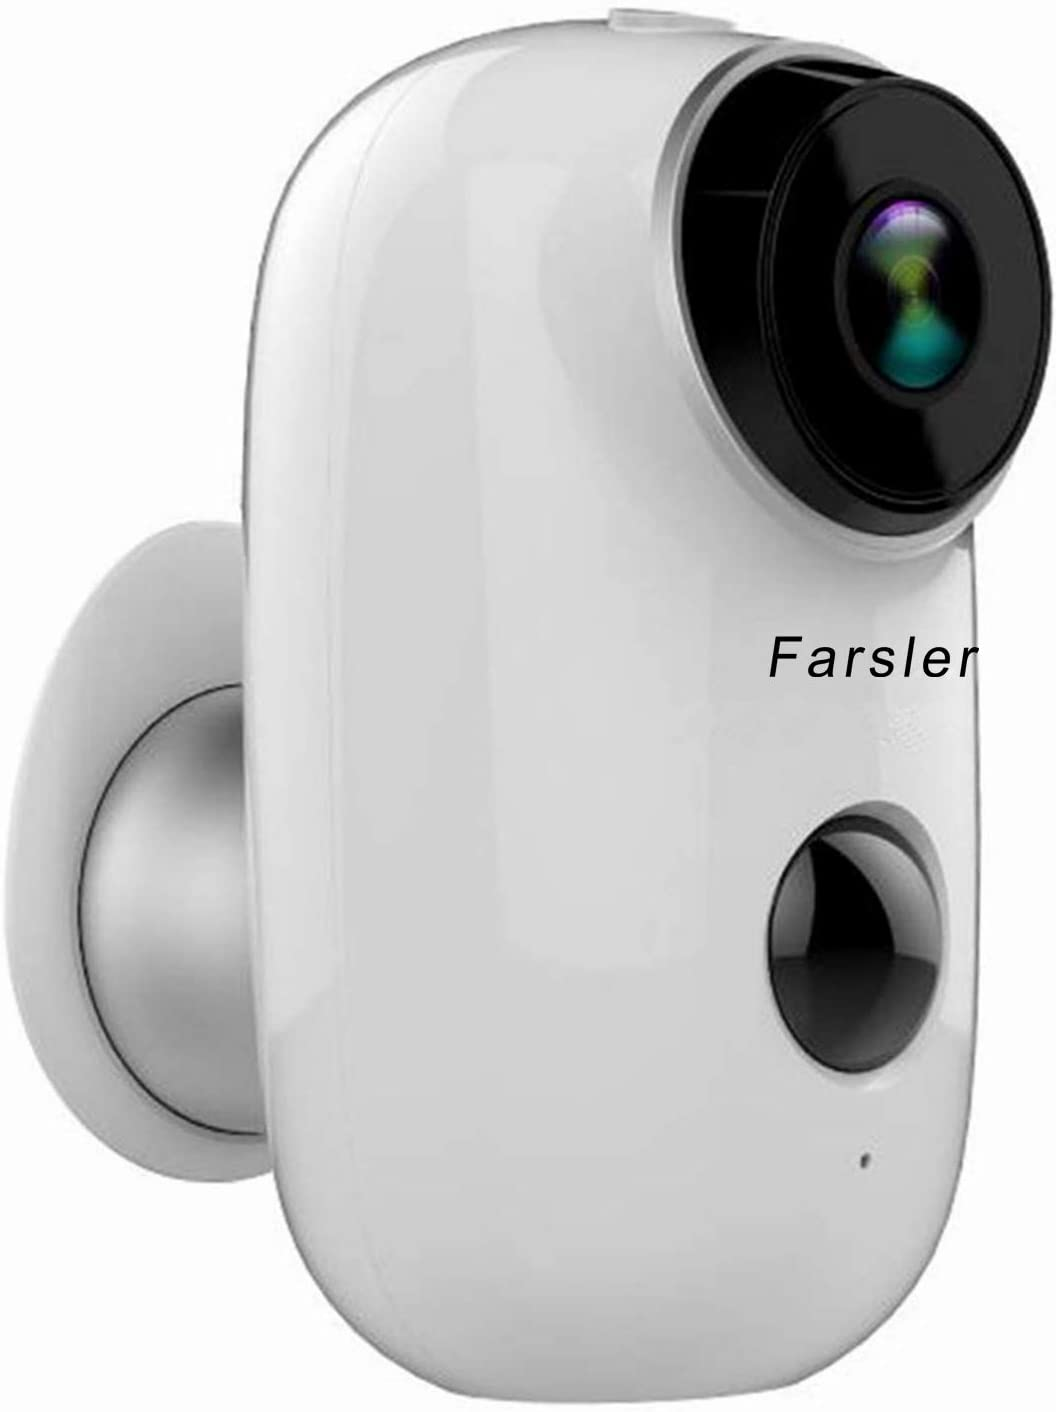 Farsler A3 Rechargeable Battery-Powered Camera Indoor Outdoor Wireless Security Camera 1080p HD Wire-Free 2-Way Audio Night Vision Alarm Alert PIR Motion Sensor w Built-in SD Slot